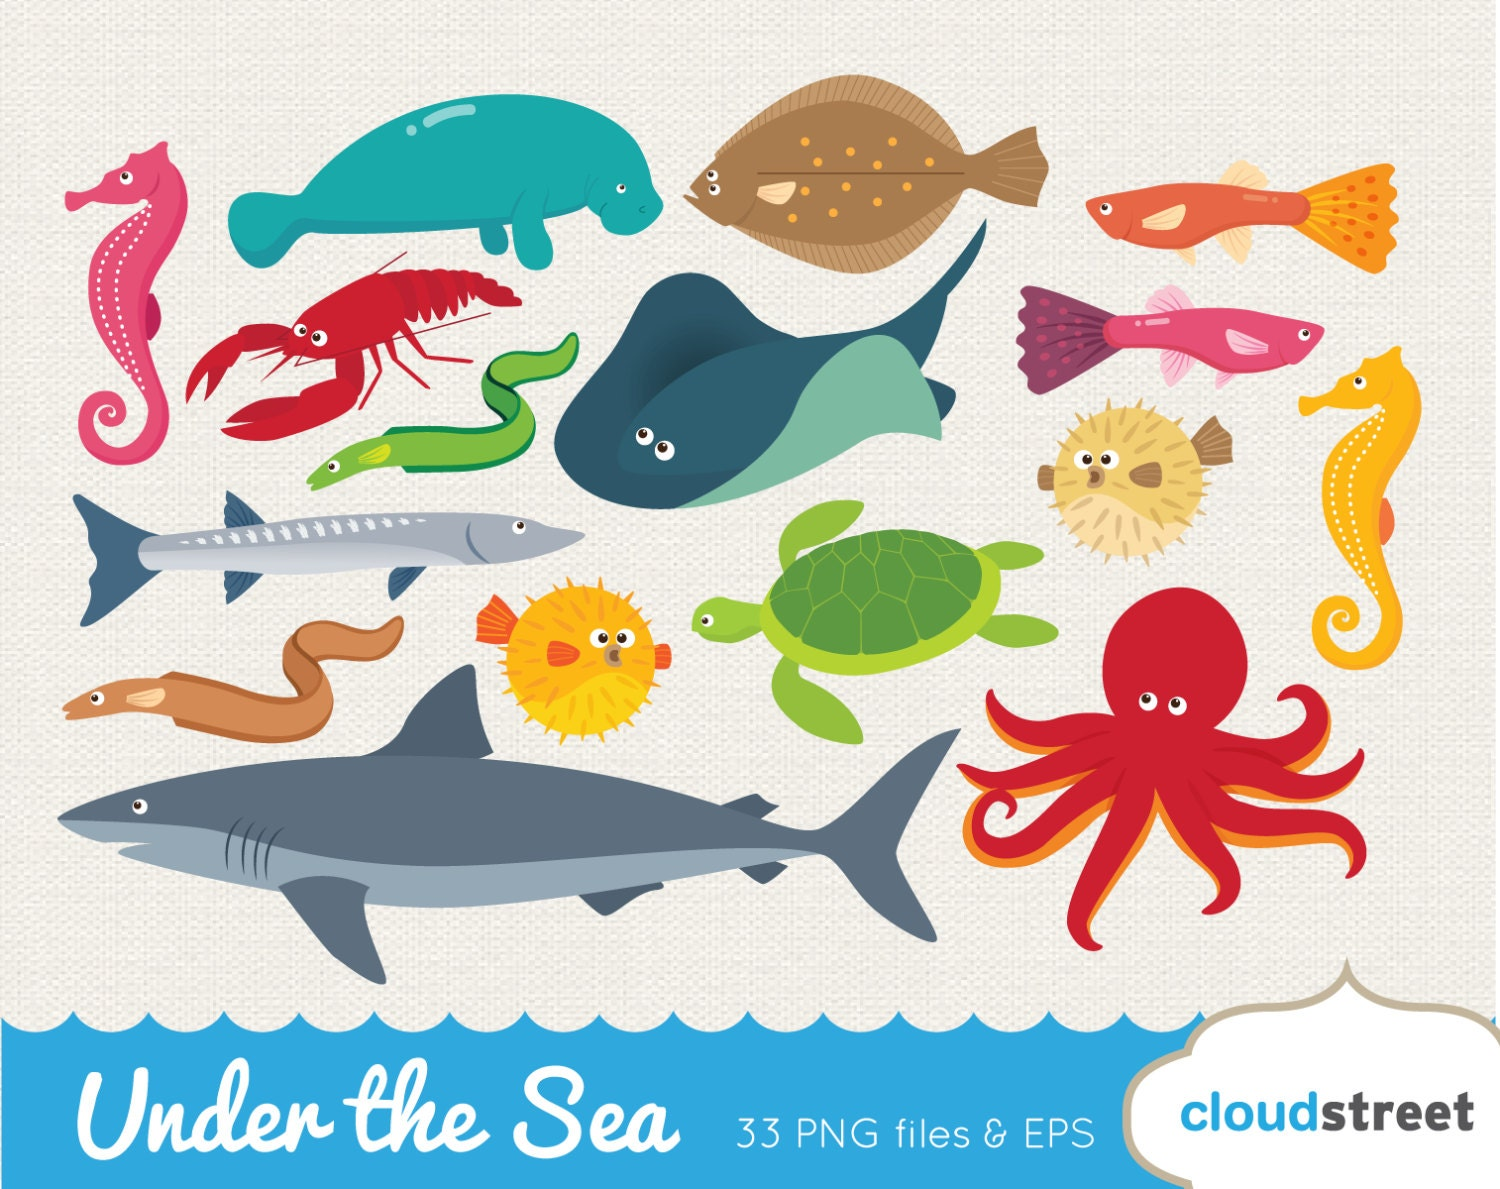 Clip Art Sea Creatures Clipart sea animal clipart etsy buy 2 get 1 free vector under the clip art creatures puffer fish shark octopus manatee turtle stingray commercial use ok